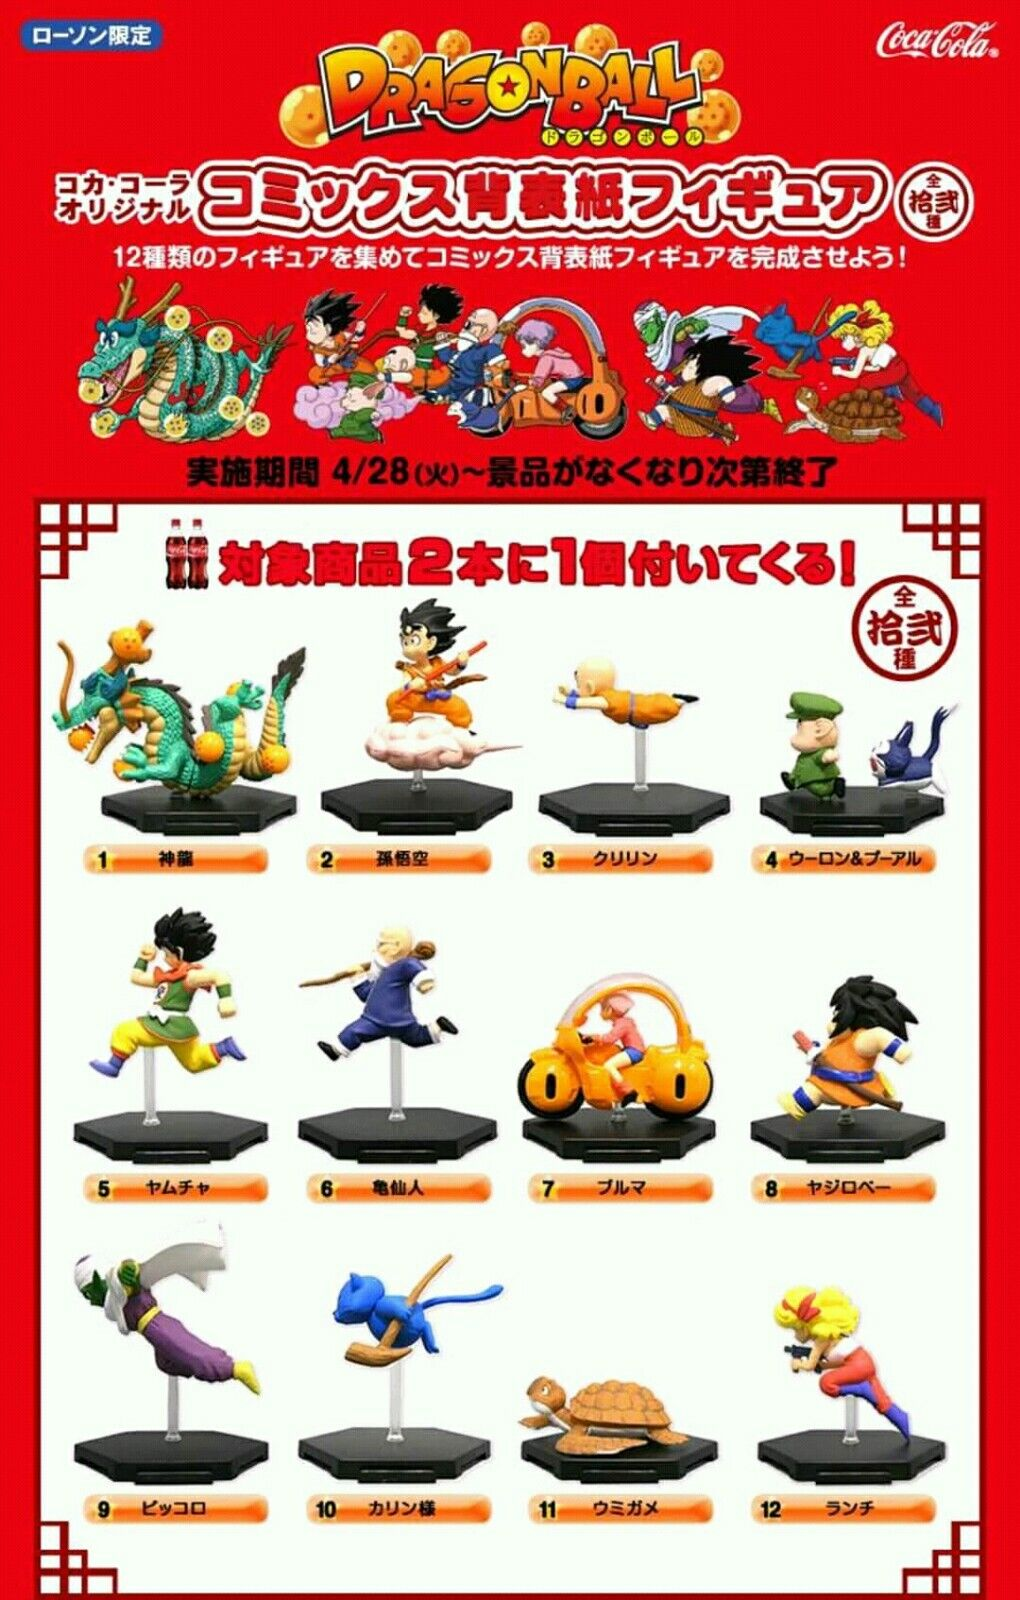 DRAGON BALL X COKE SPINE FIGURE VOL.1 FULL SET LAWSON LIMITED EDITION